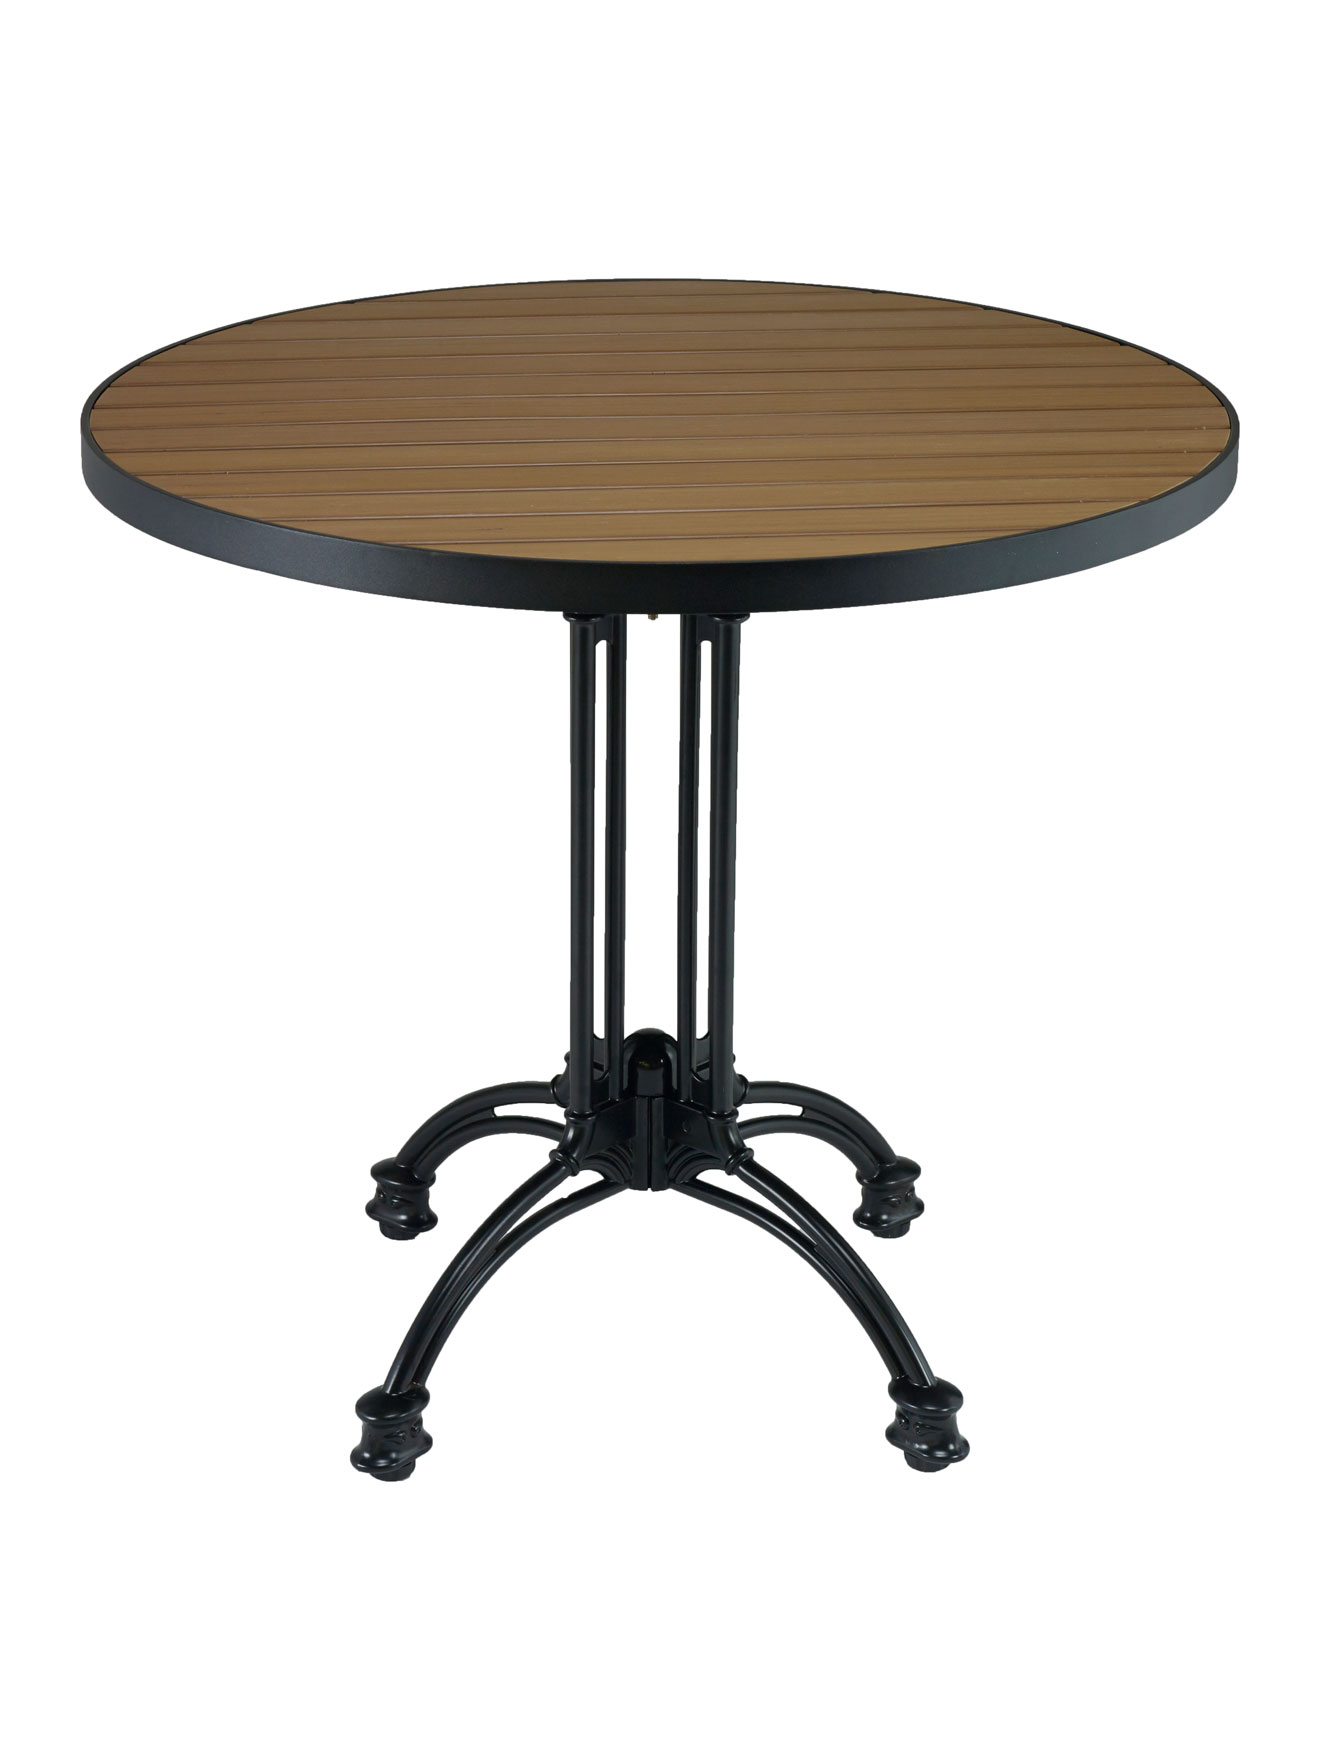 Faux Teak Metal Frame Round Table Top